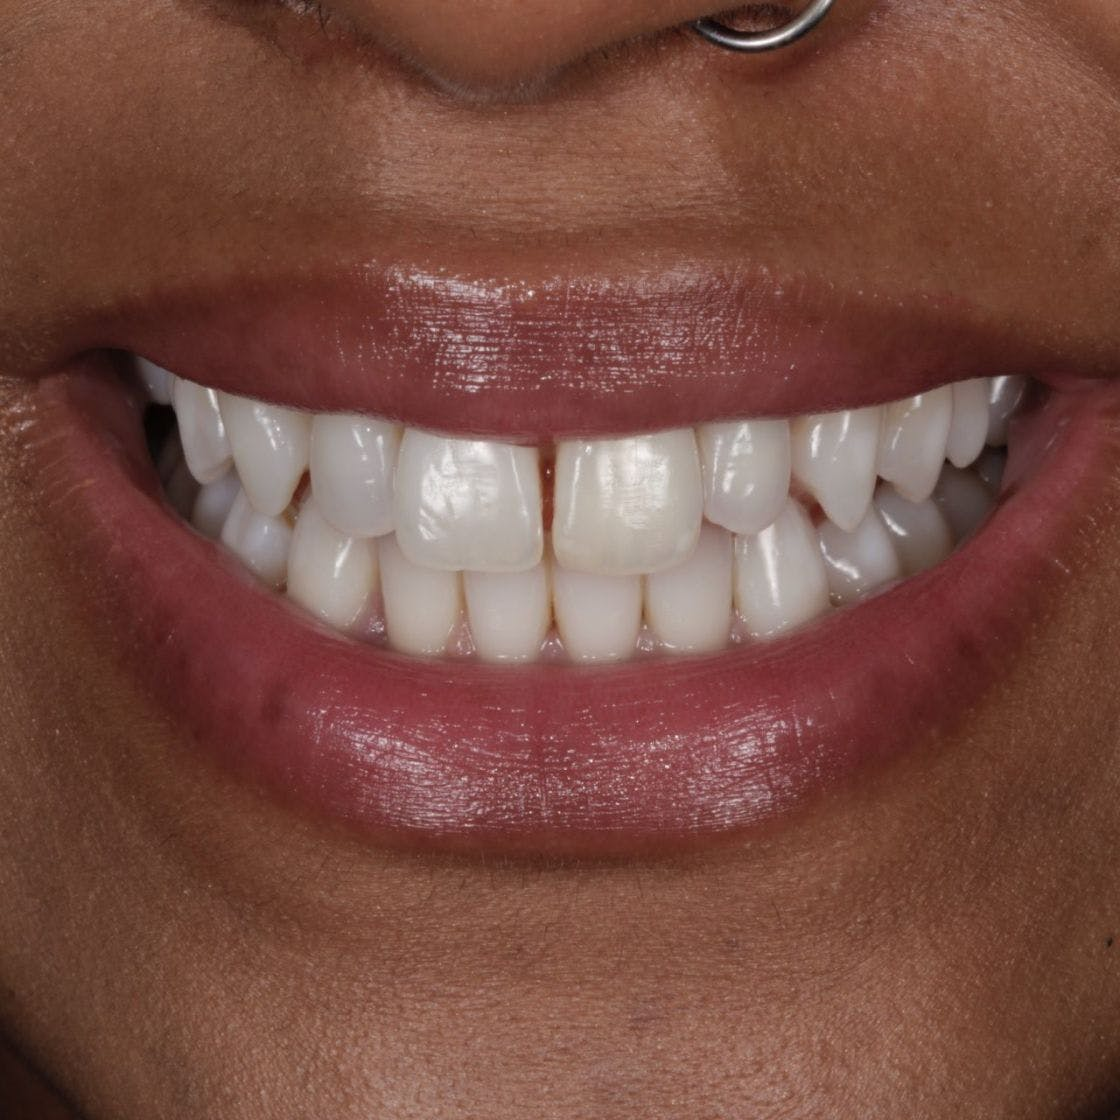 Woman's smile and teeth before composite bonding treatment